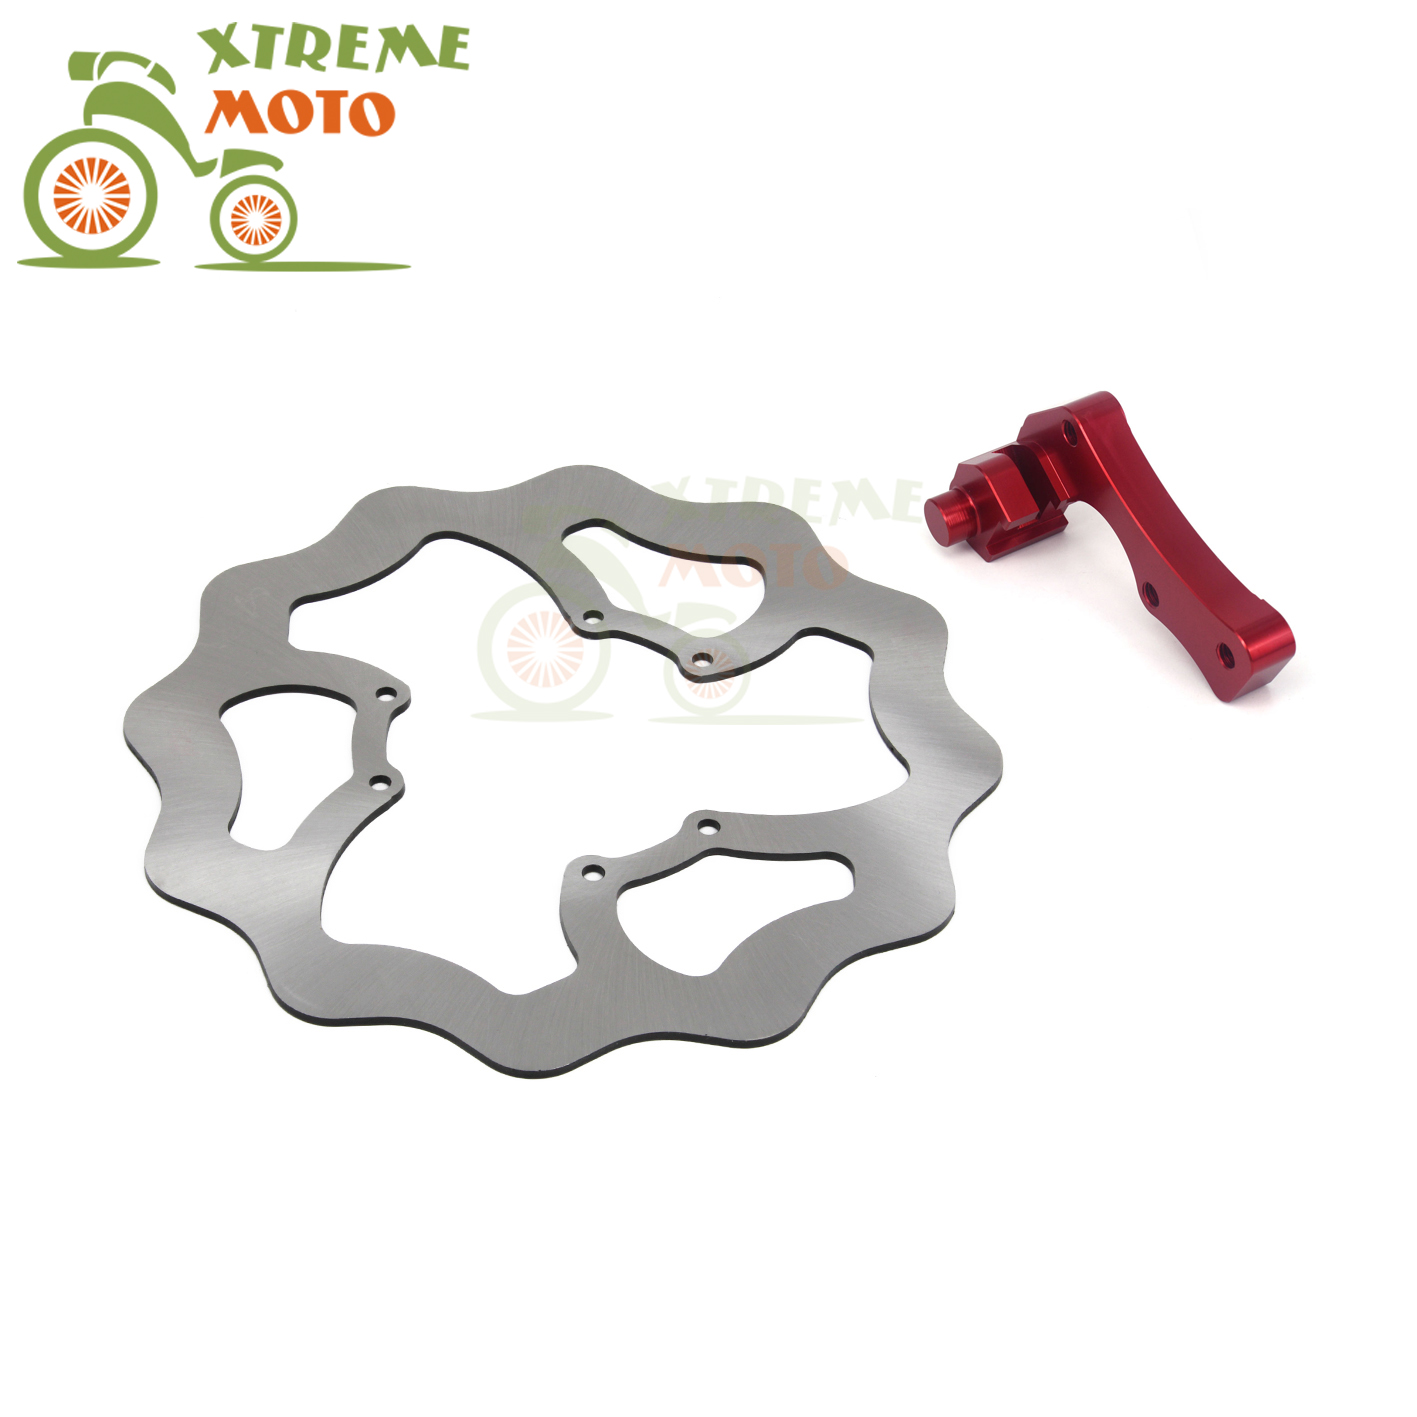 270MM Front Wavy Brake Disc Bracket For Honda CR125E 125R 250E 250R CRE250F 250X 250R CRF250X